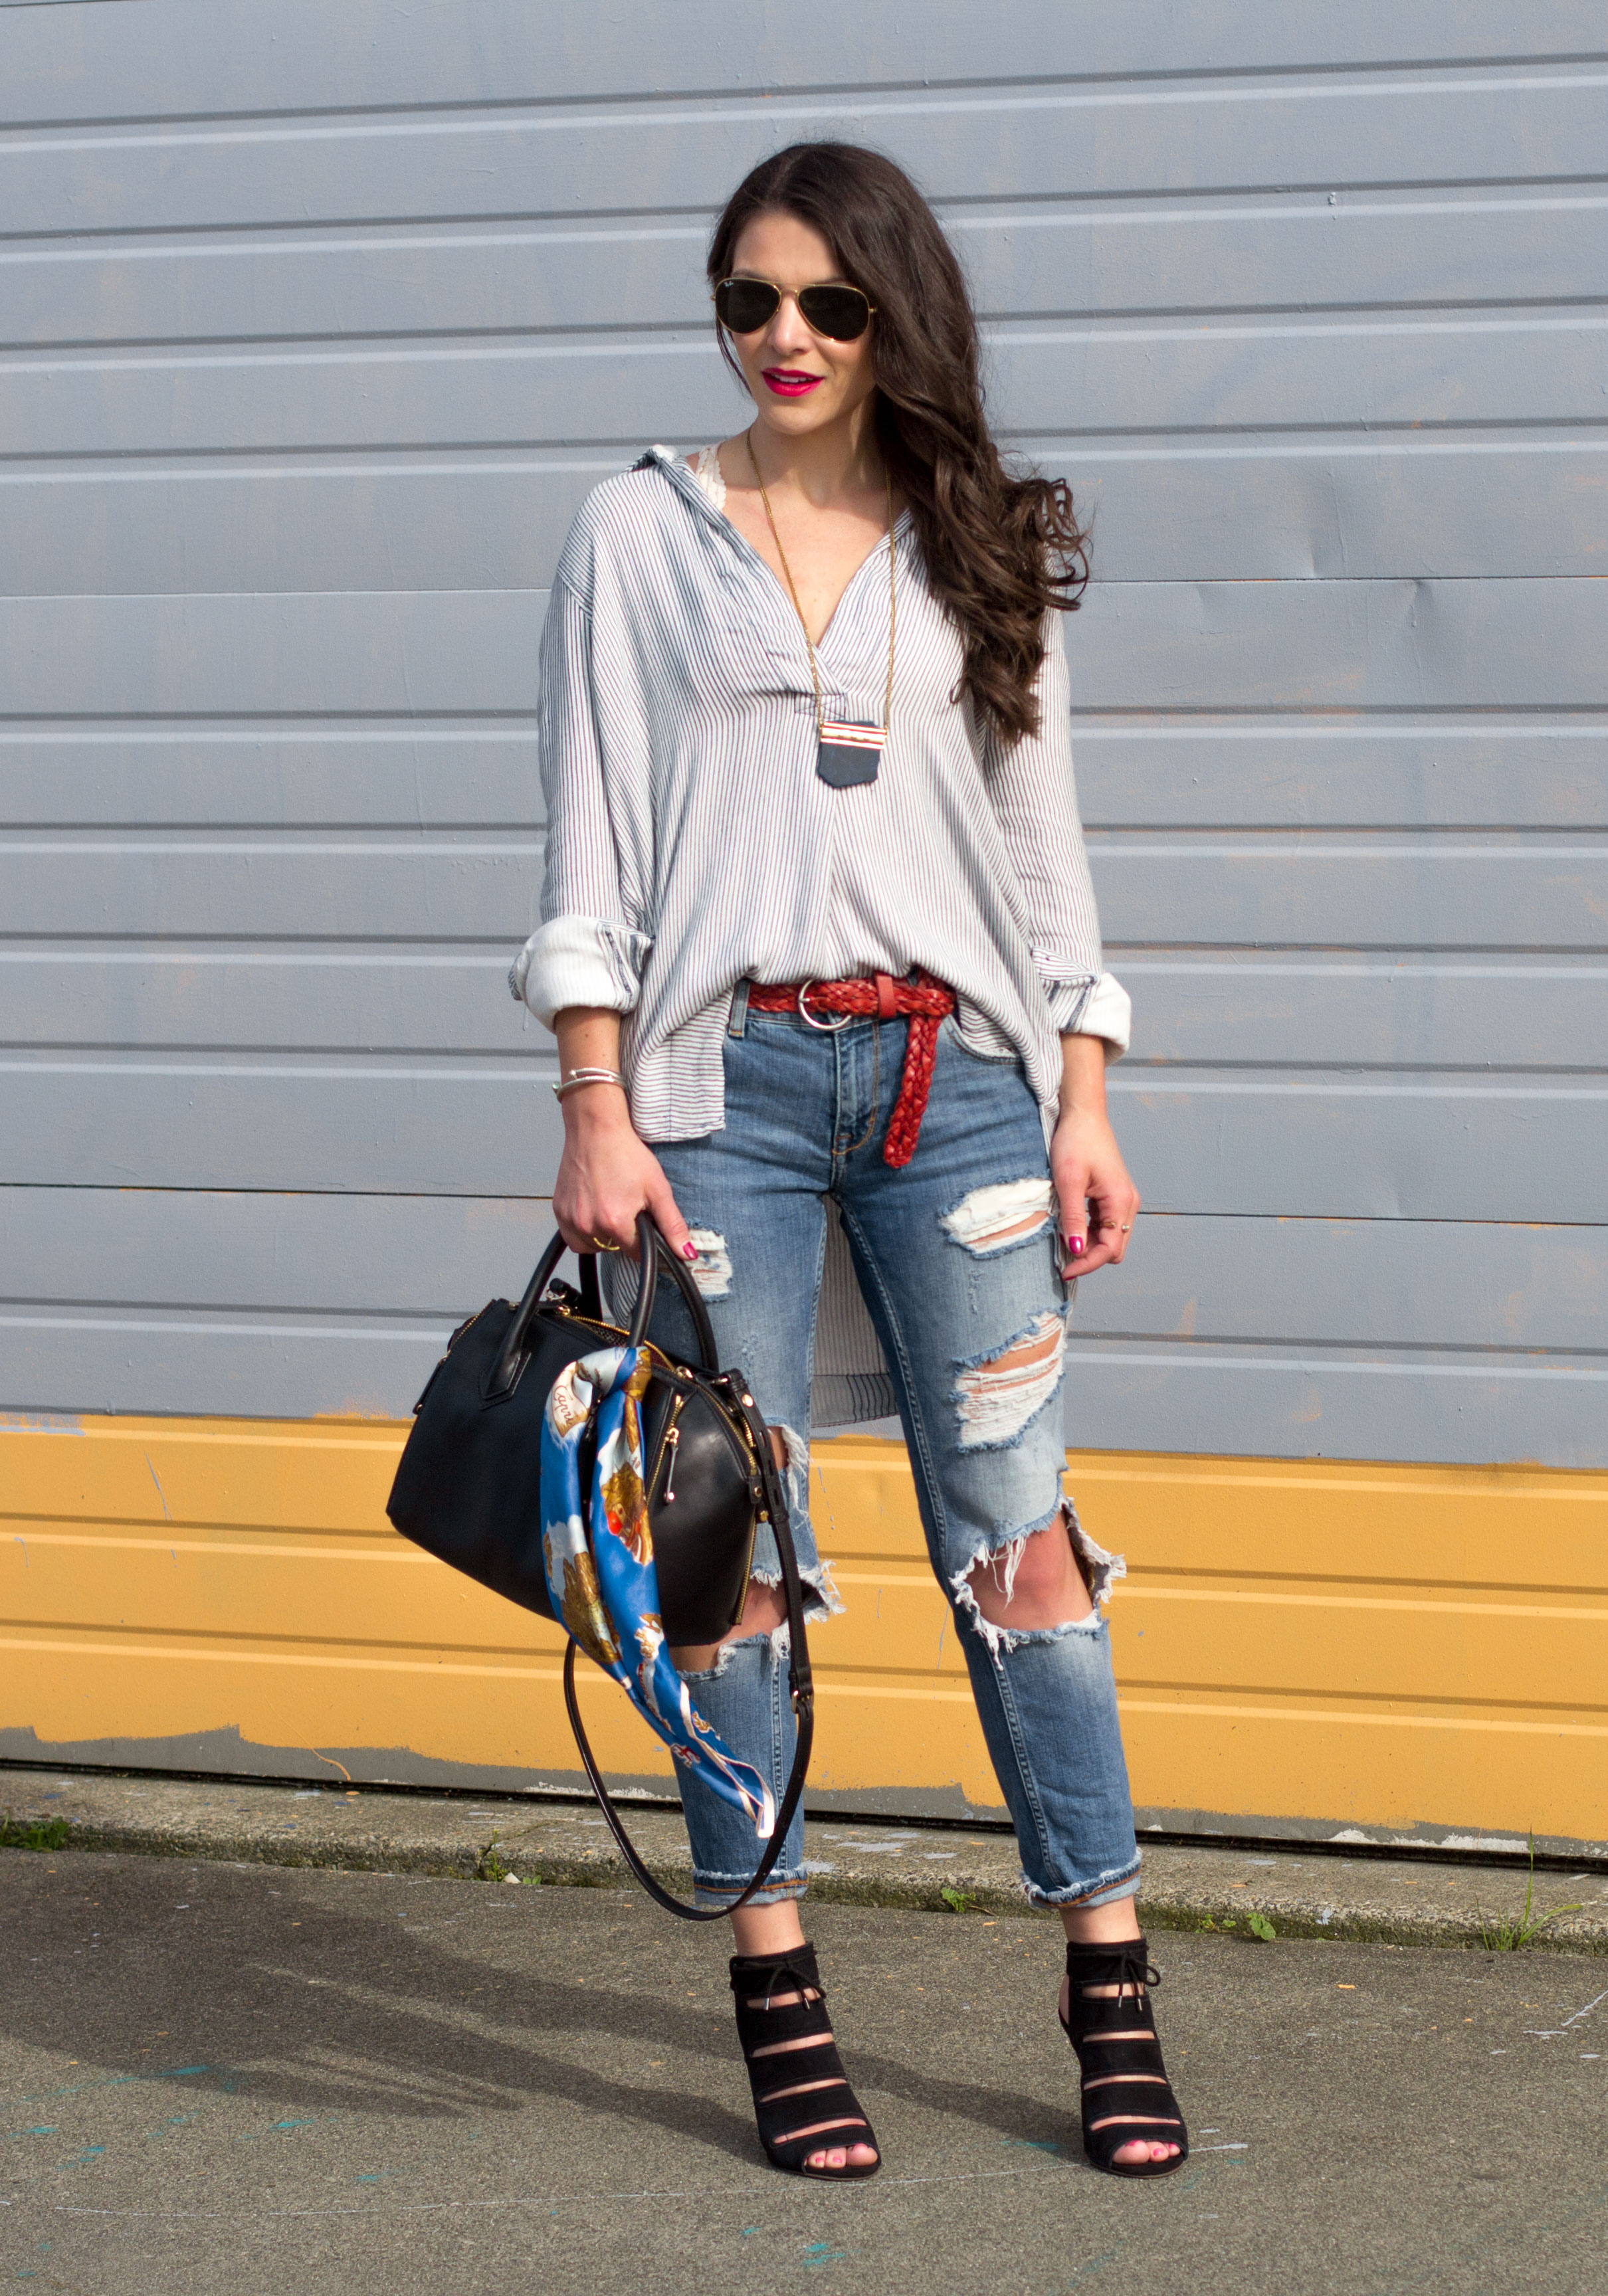 Free People Striped On The Road Shirt, Zara Destroyed Denim, Seychelles Caged Sandals, Rebecca Minkoff Avery, Lucky Brand Lapis Necklace, Seattle Fashion Blogger